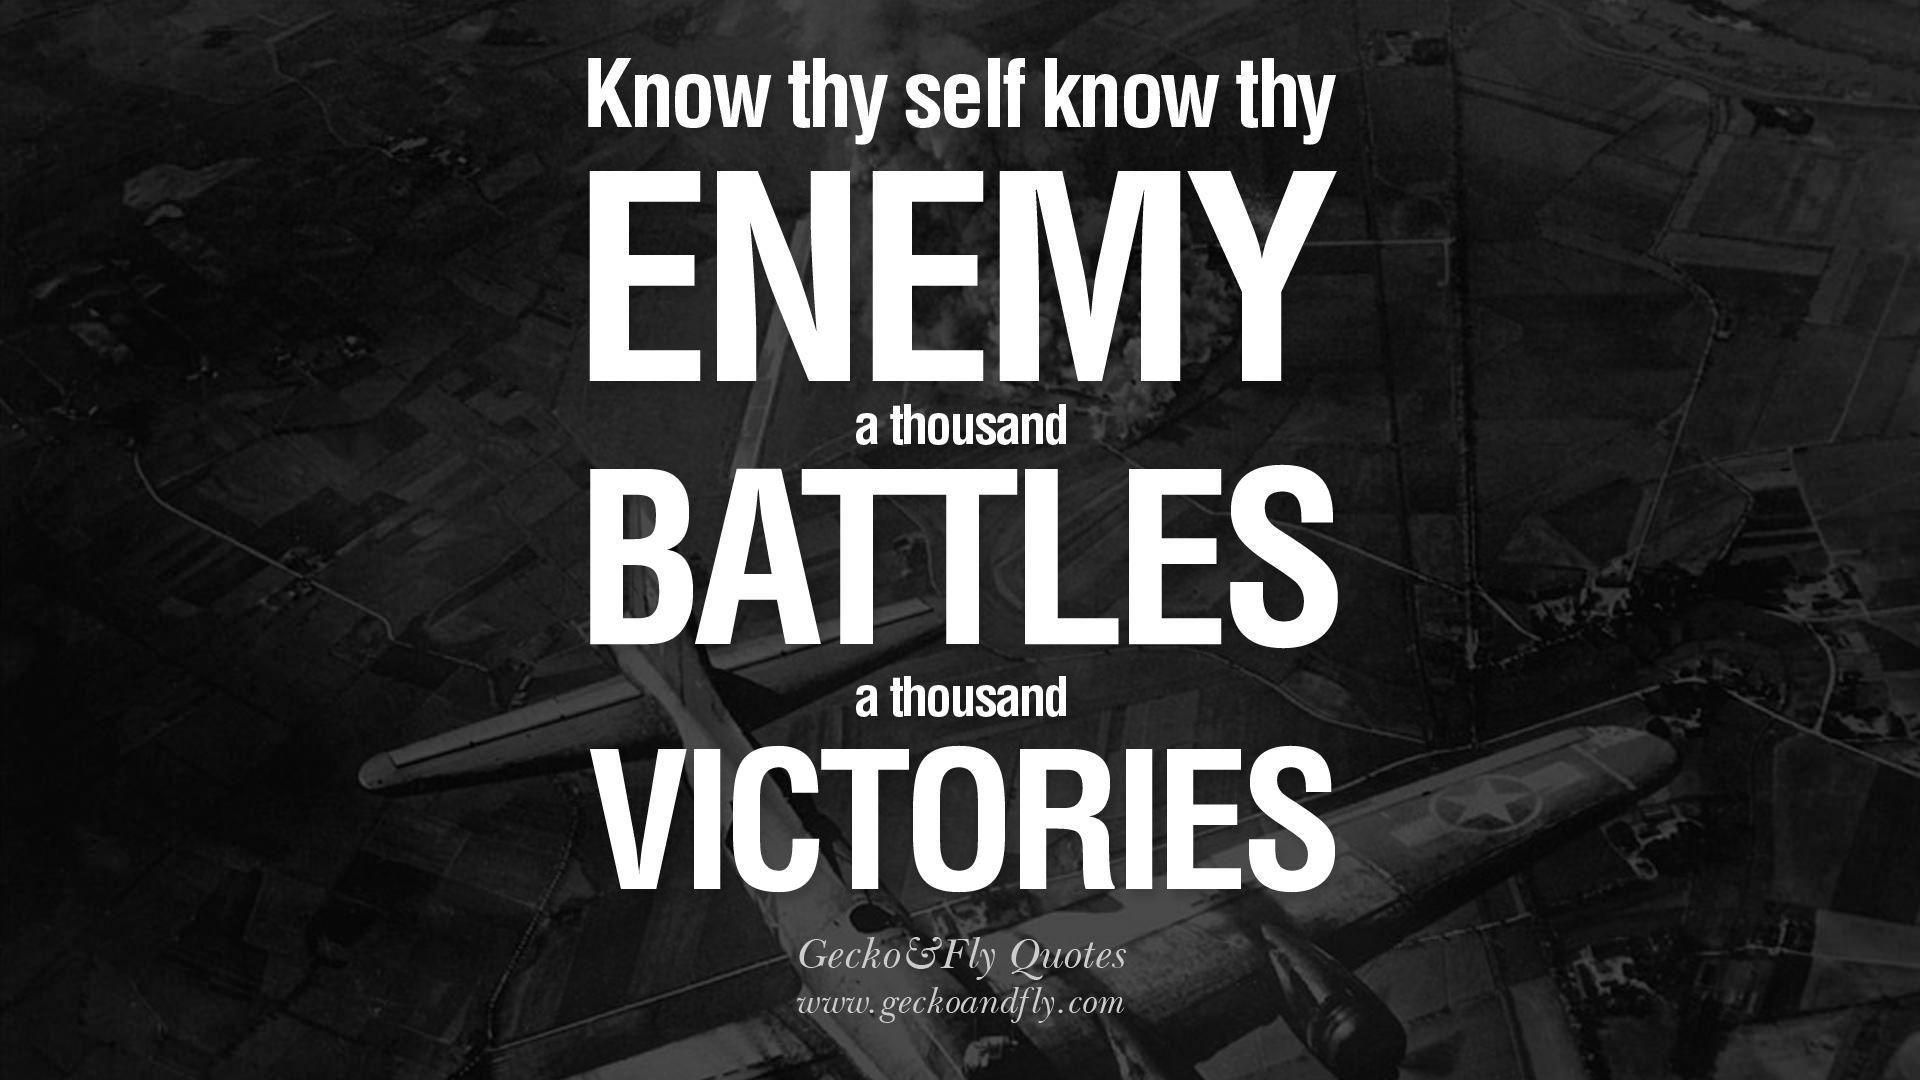 Famous graffiti art quotes - Know Thy Self Know Thy Enemy A Thousand Battles A Thousand Victories 18 Quotes From Sun Tzu Art Of War For Politics Business And Sports